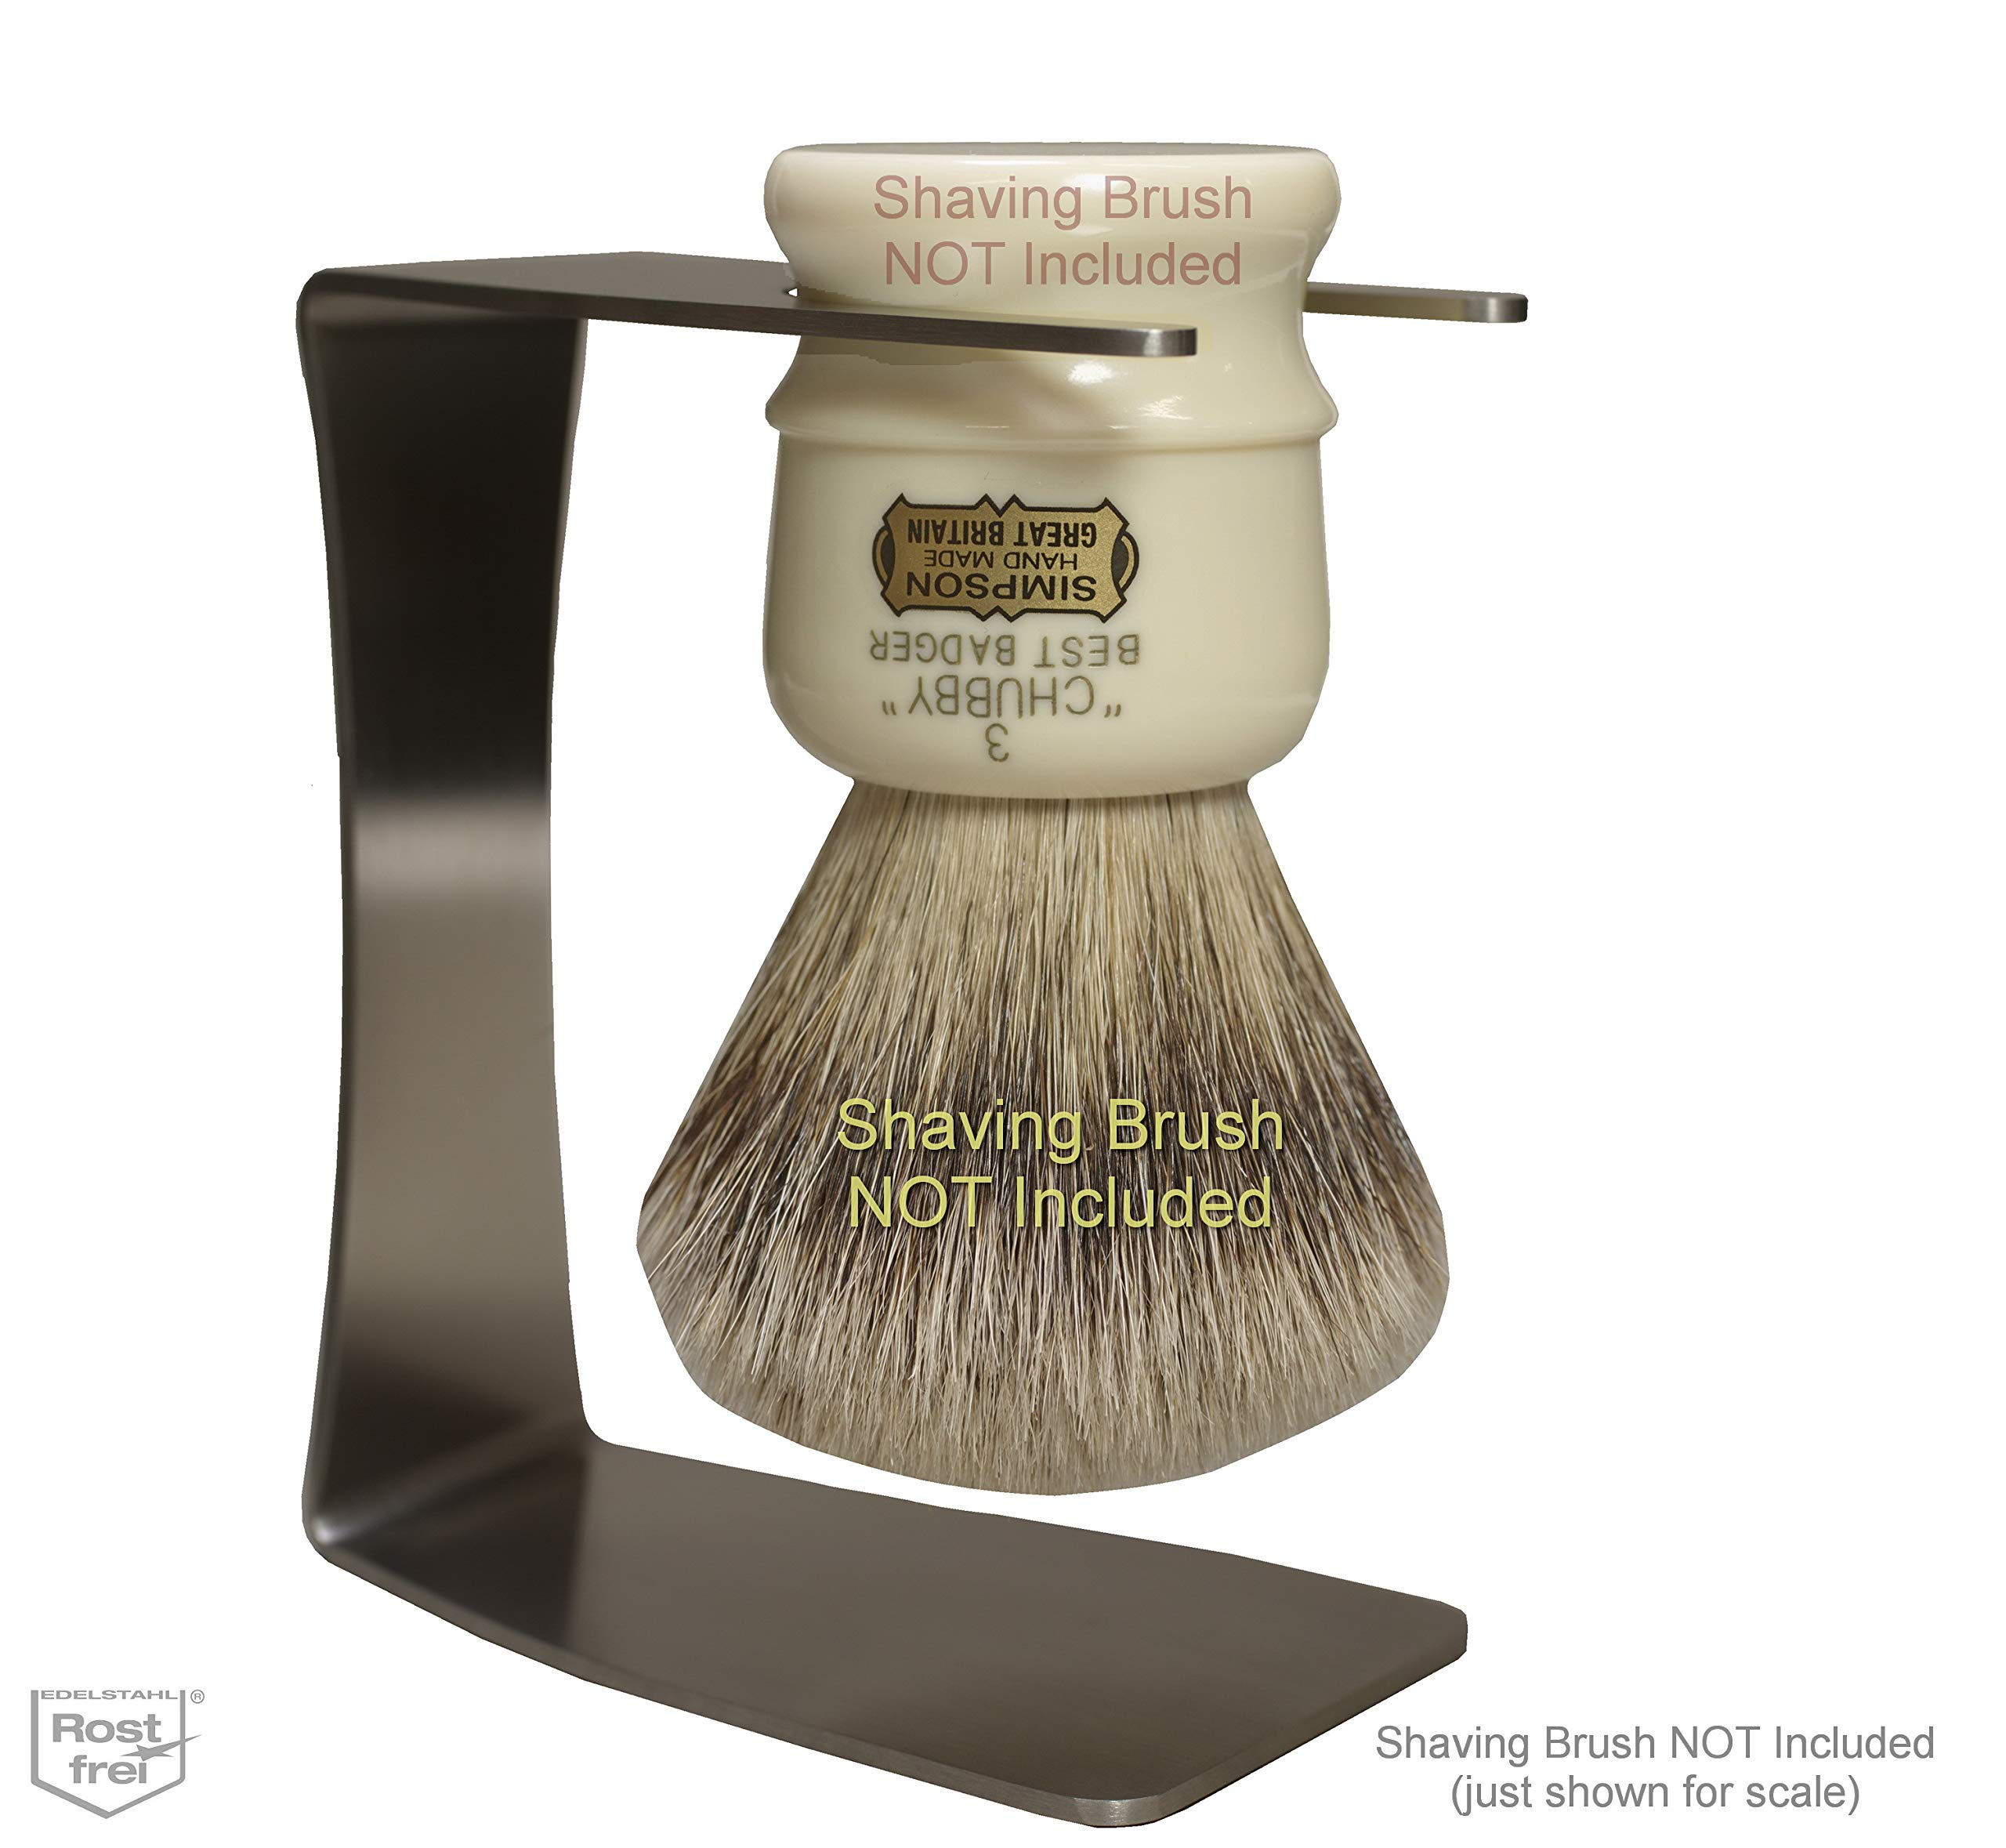 Stainless Steel Brush Stand for Simpsons Chubby 3 CH3 and Others, Holds Brush by its Waist Instead of the Knot/Handle Border to Extend Brush Knot Lifespan by The Superior Shave